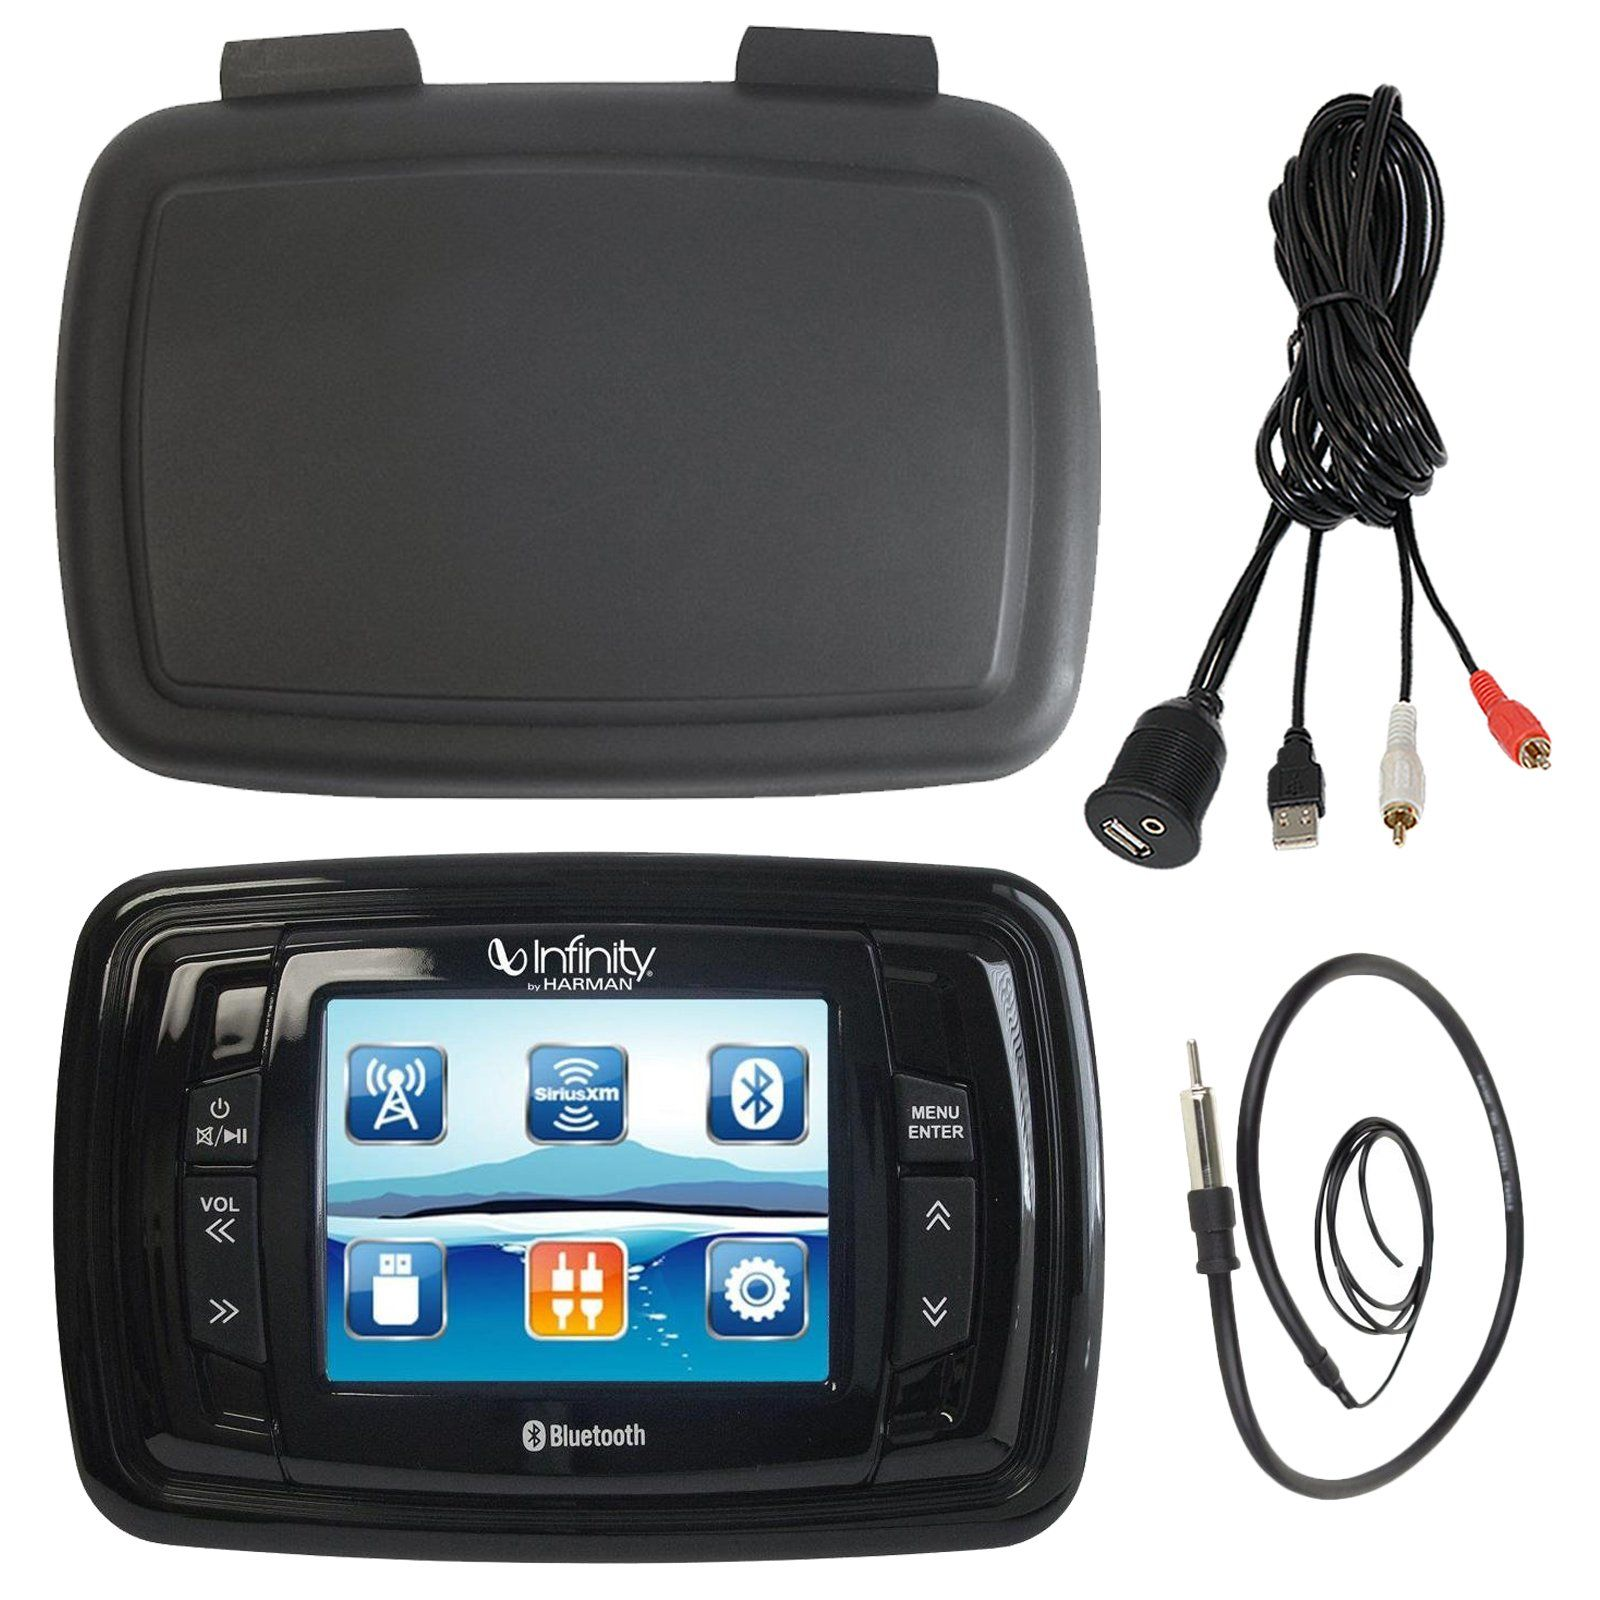 "Infinity PRV350 Marine 3.5"" TFT Display Bluetooth SiriusXM"